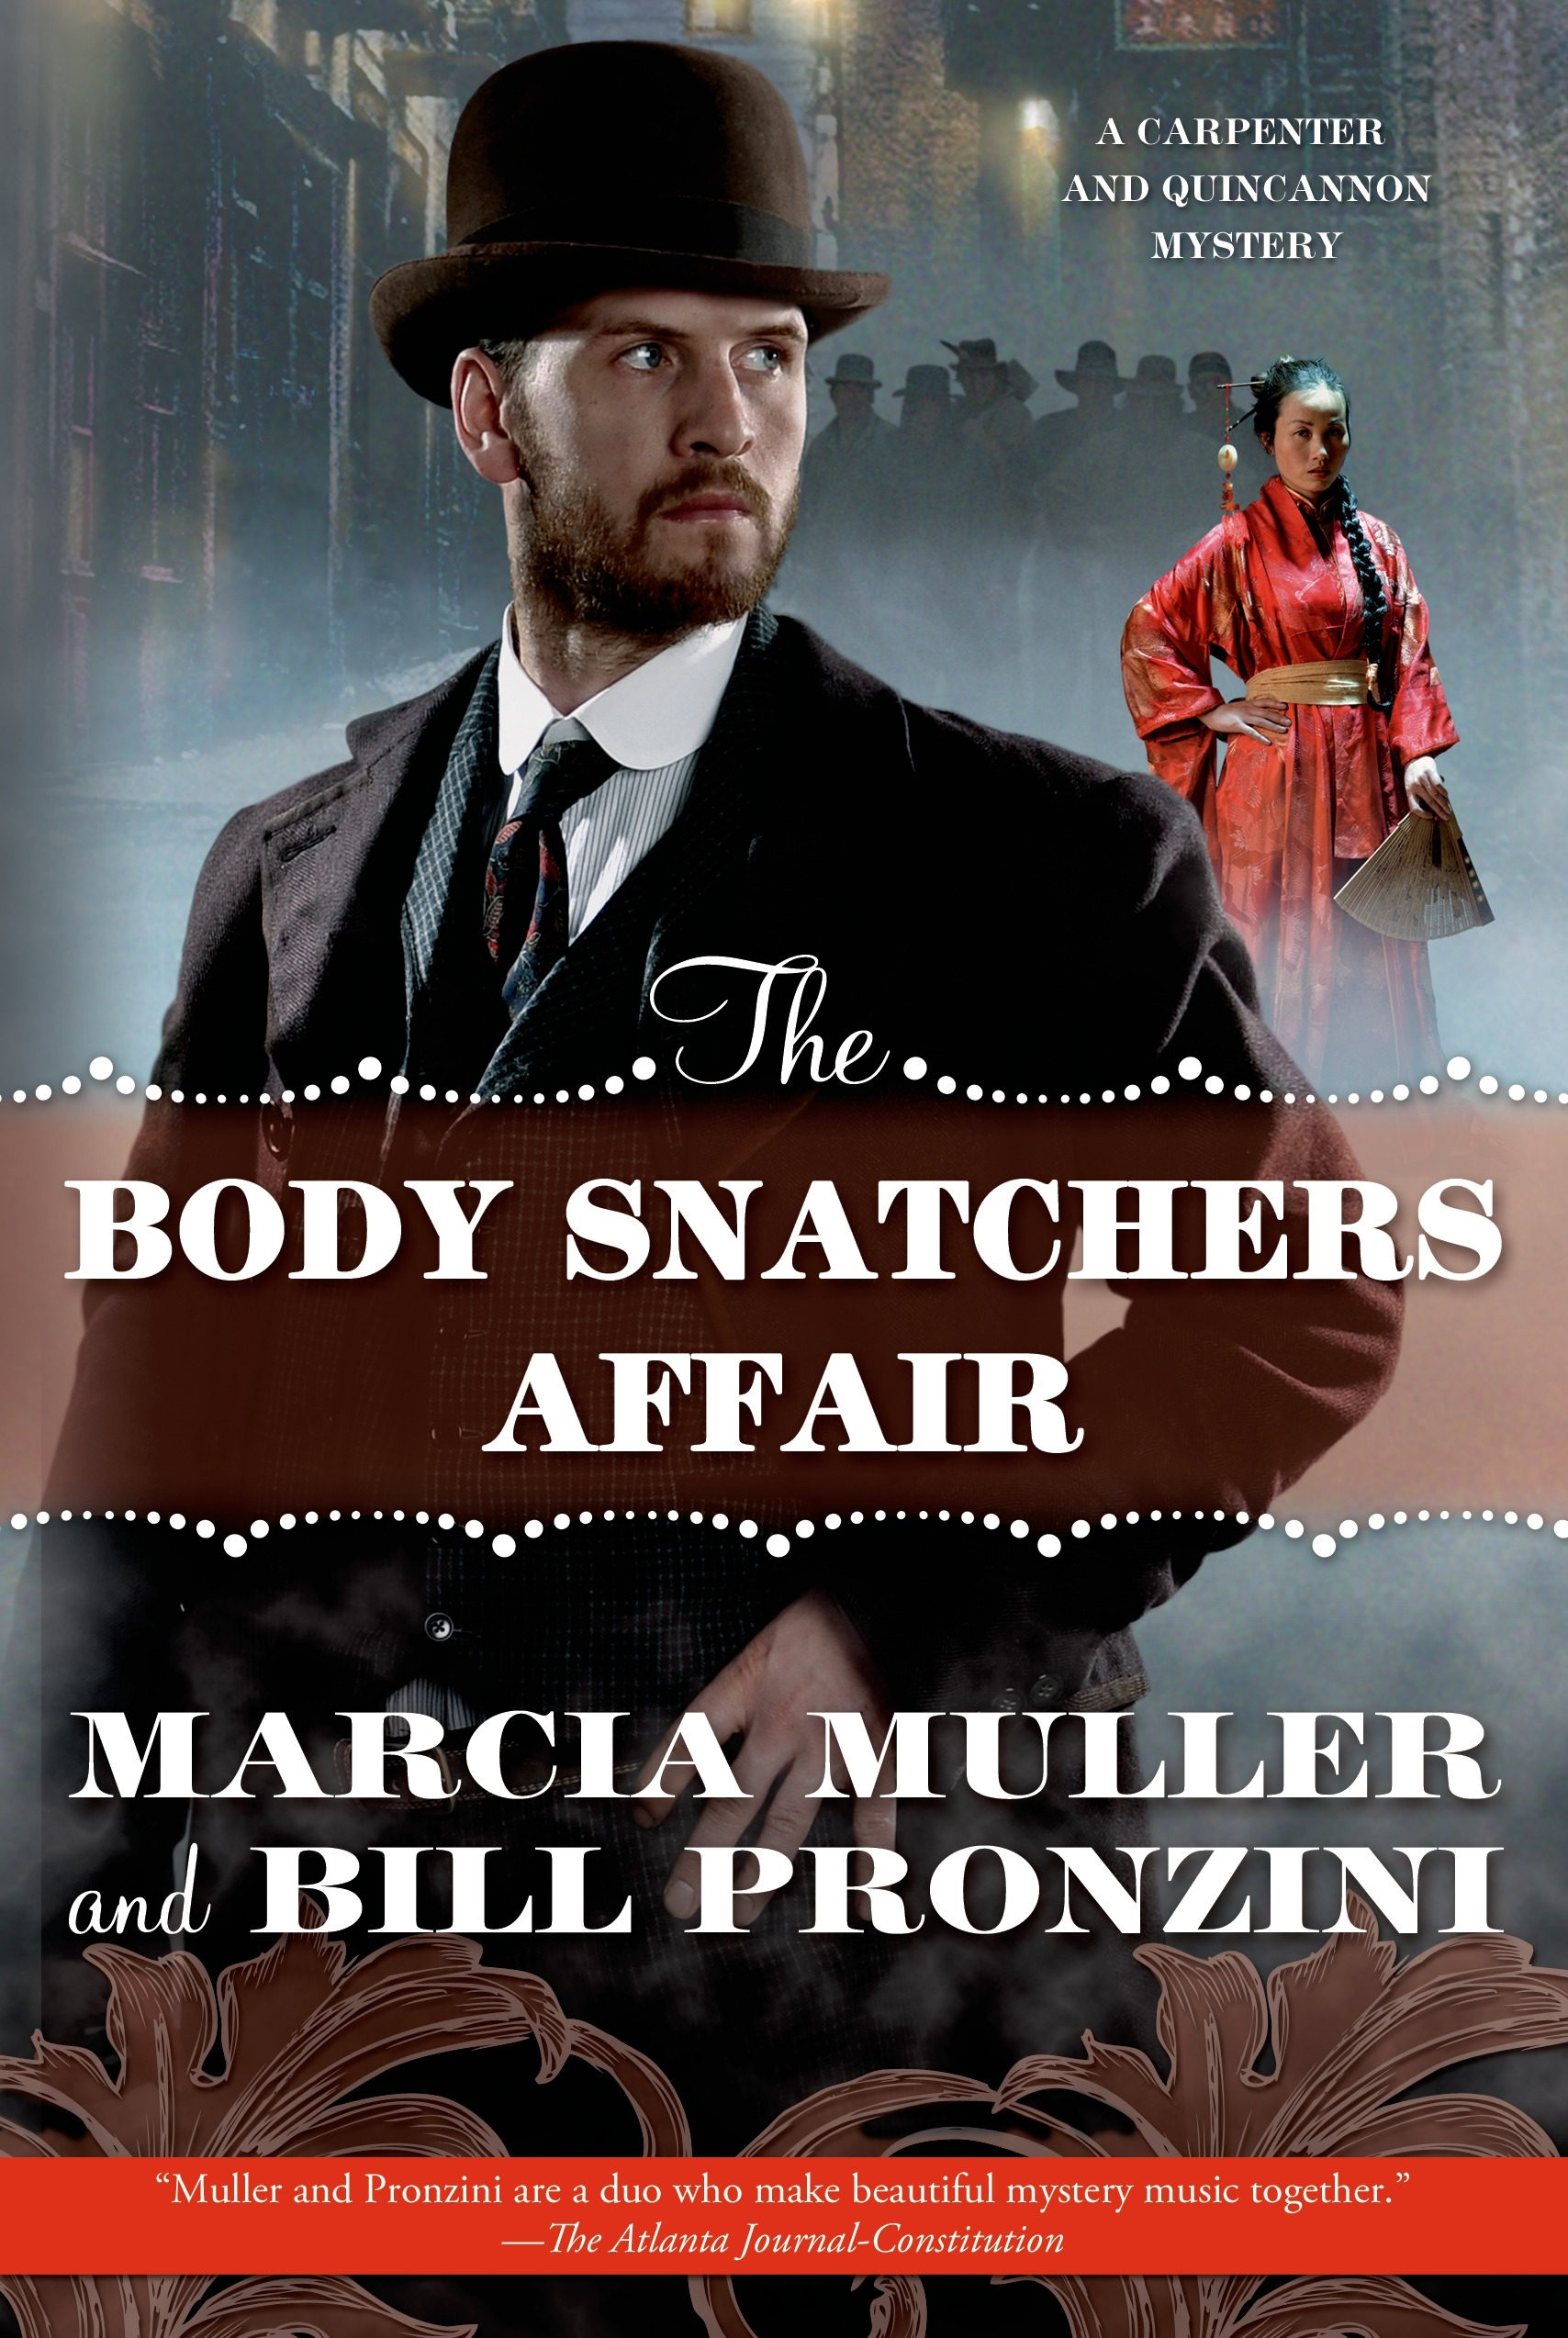 The Body Snatchers Affair A Carpenter and Quincannon Mystery